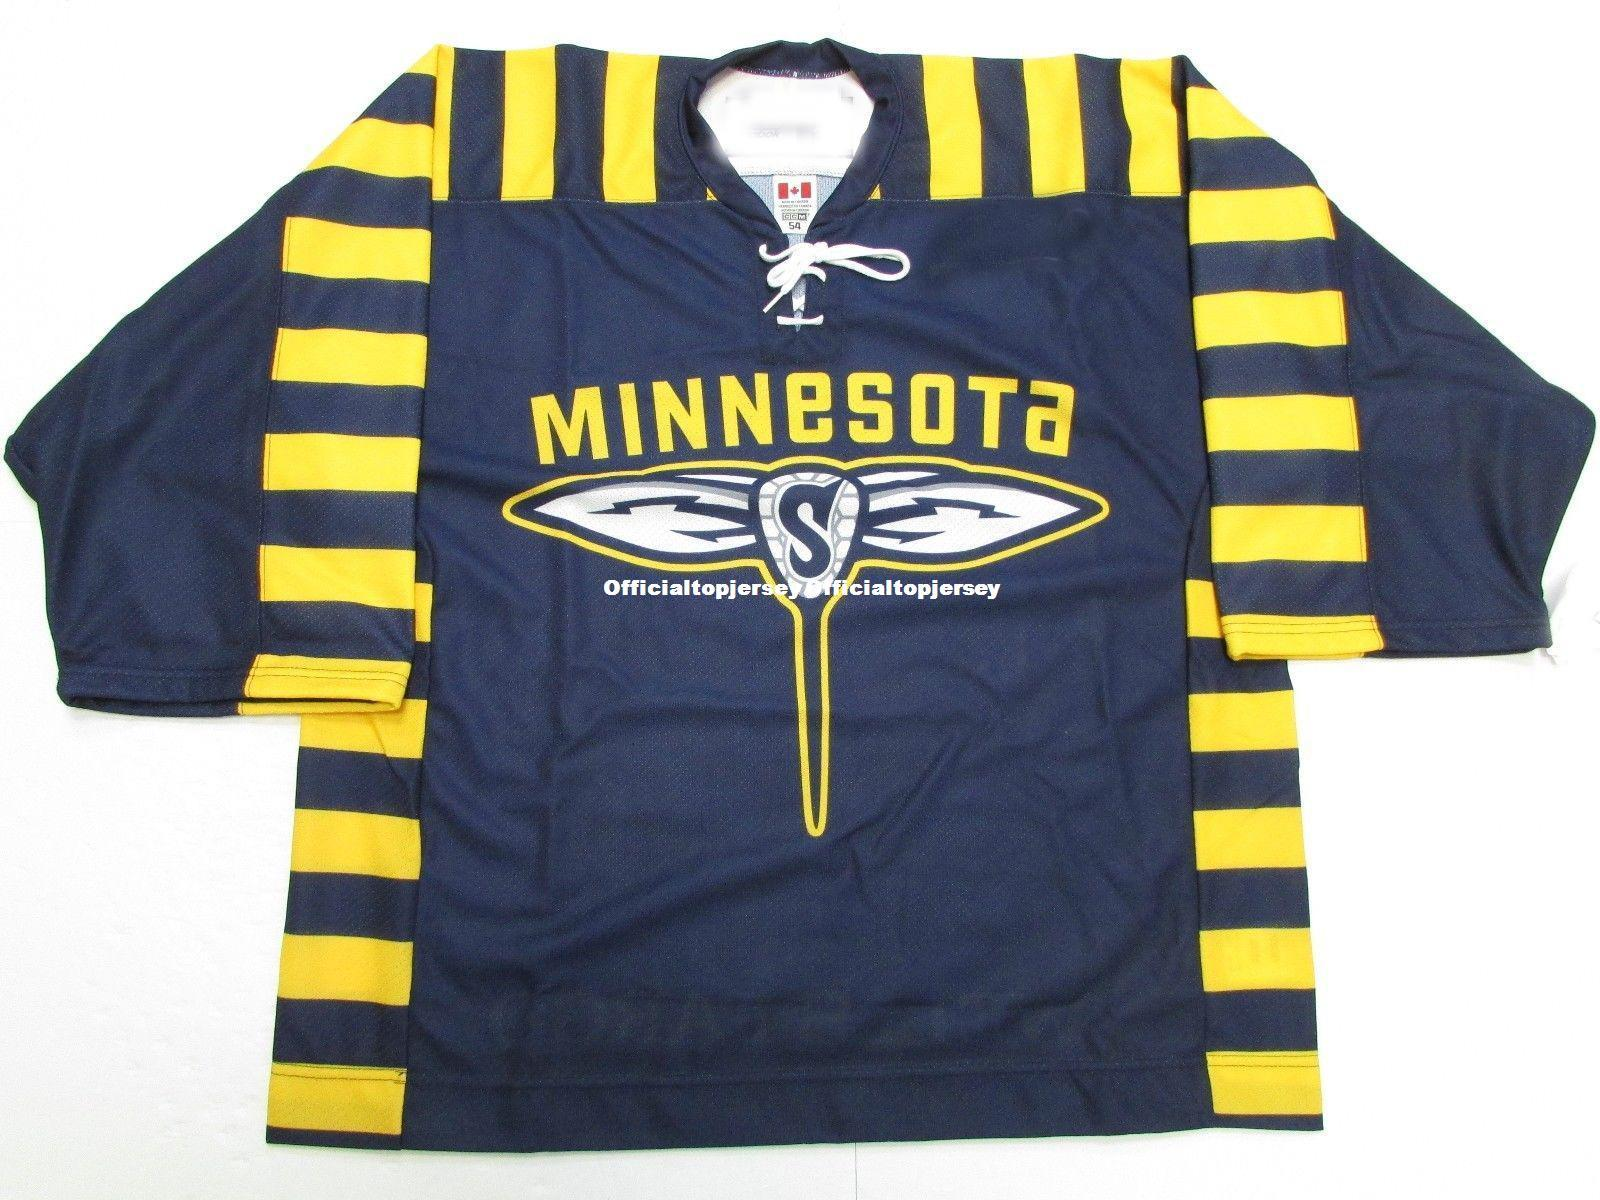 f4e03d126 2019 Cheap Custom MINNESOTA SWARM NLL LACROSSE PRO JERSEY Stitch Add Any  Number Any Name Mens Hockey Jersey GOALIE CUT 5XL From Officialtopjersey